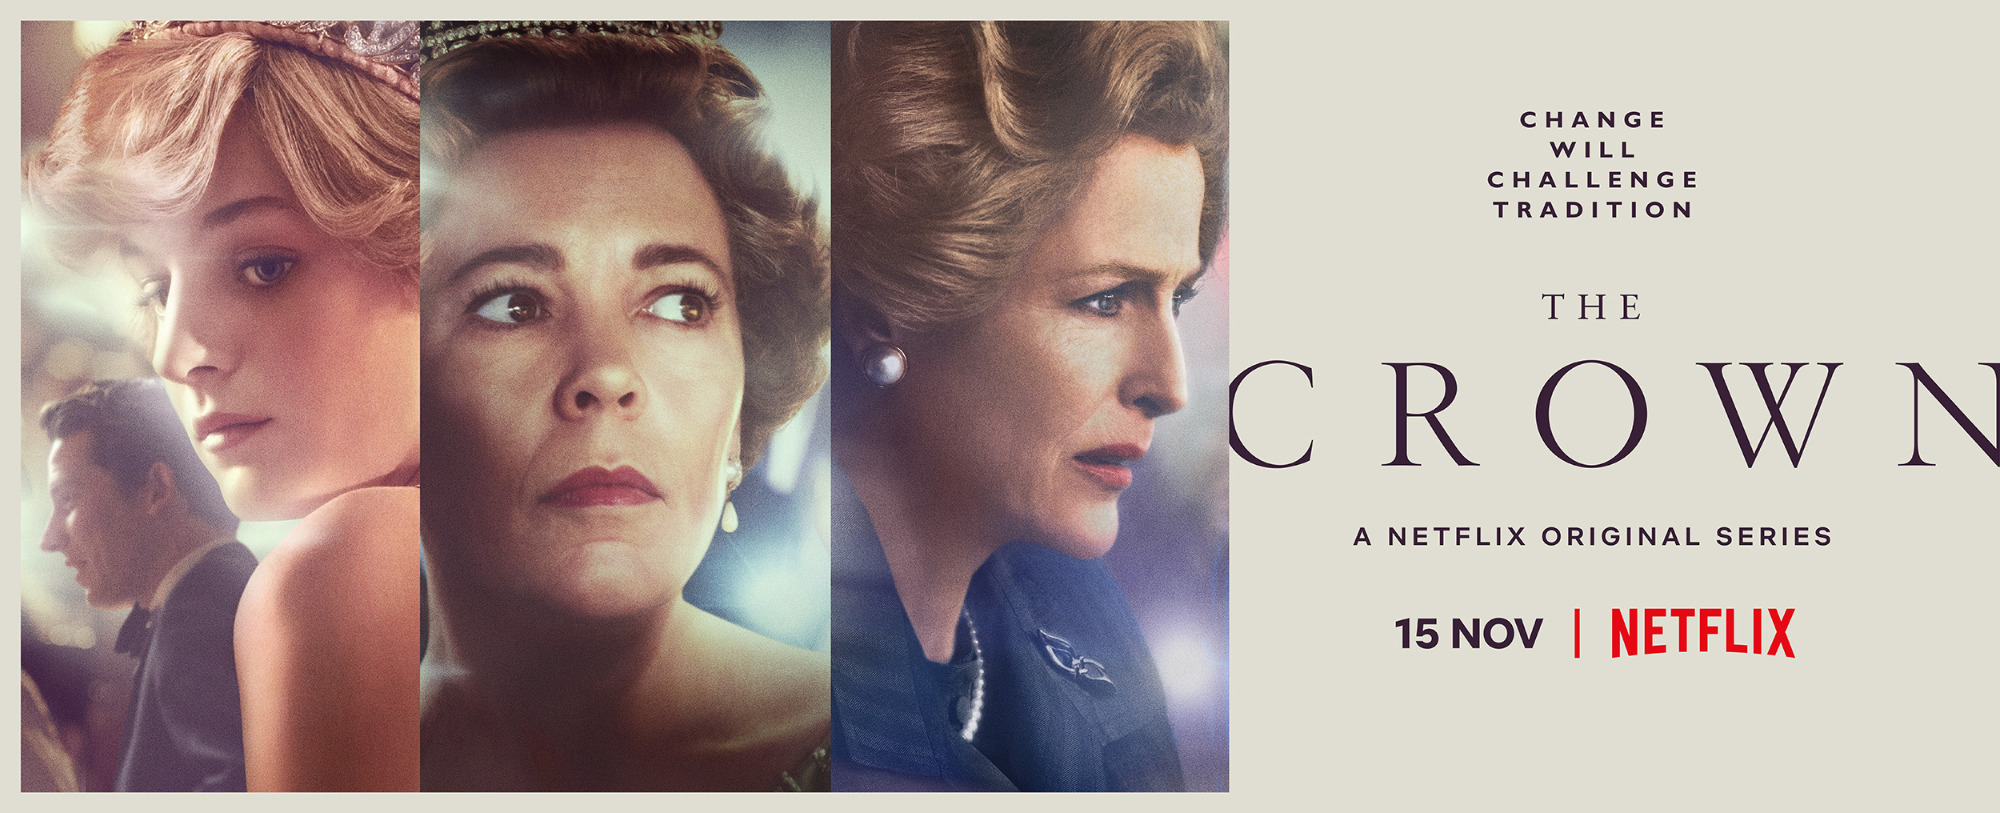 The Crown Season Four Review: The Iron Lady and England's Rose